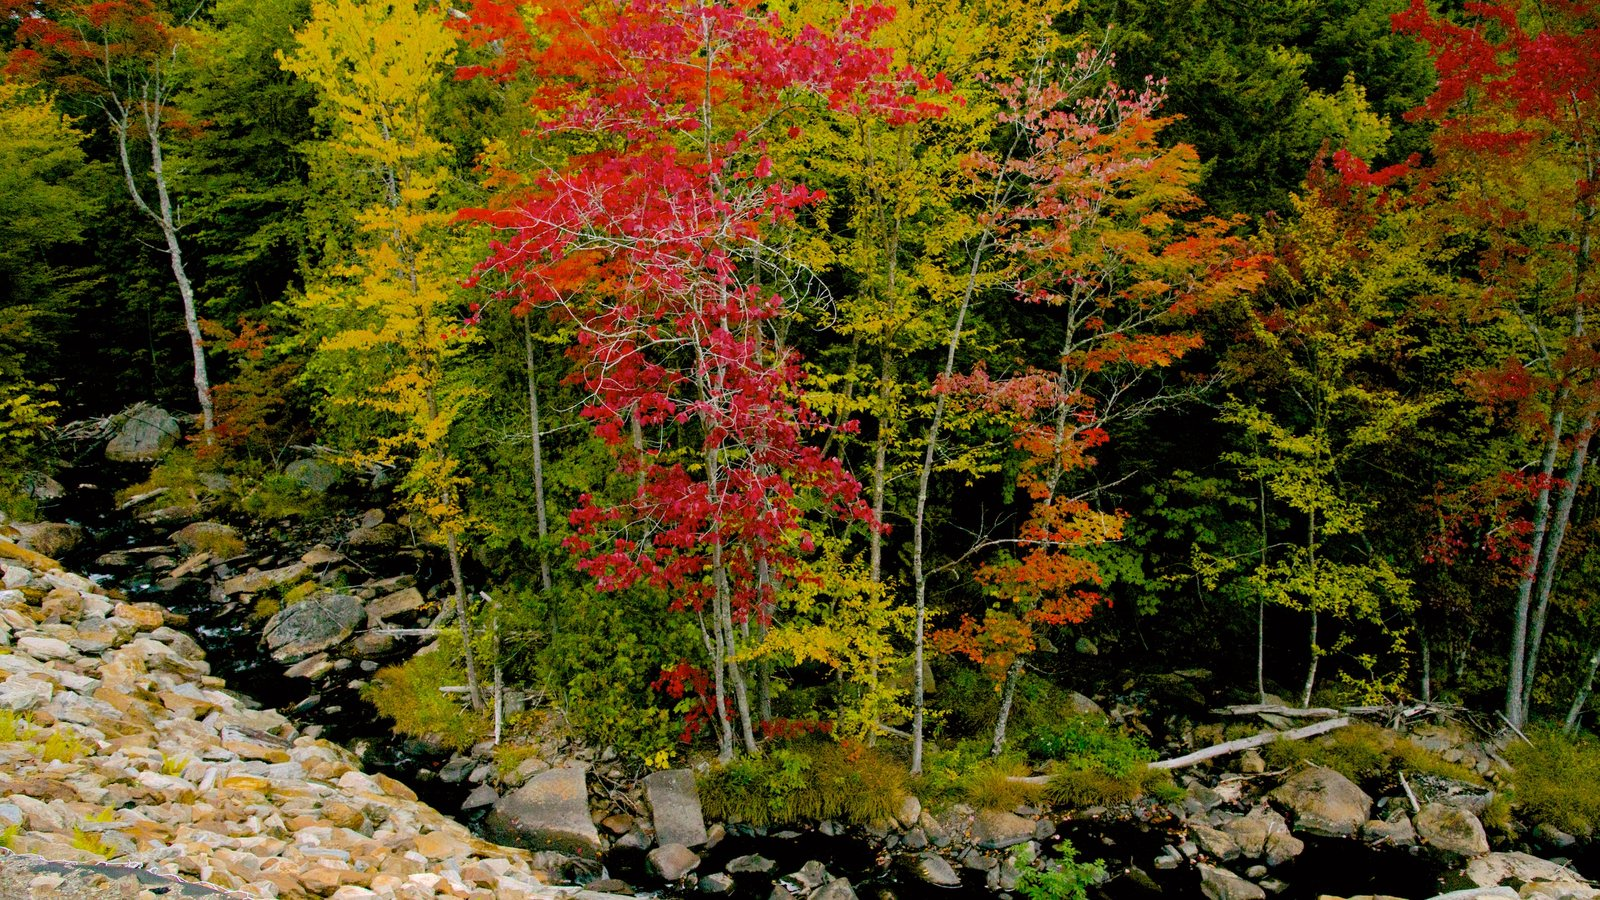 Maine featuring a river or creek, forest scenes and fall colors